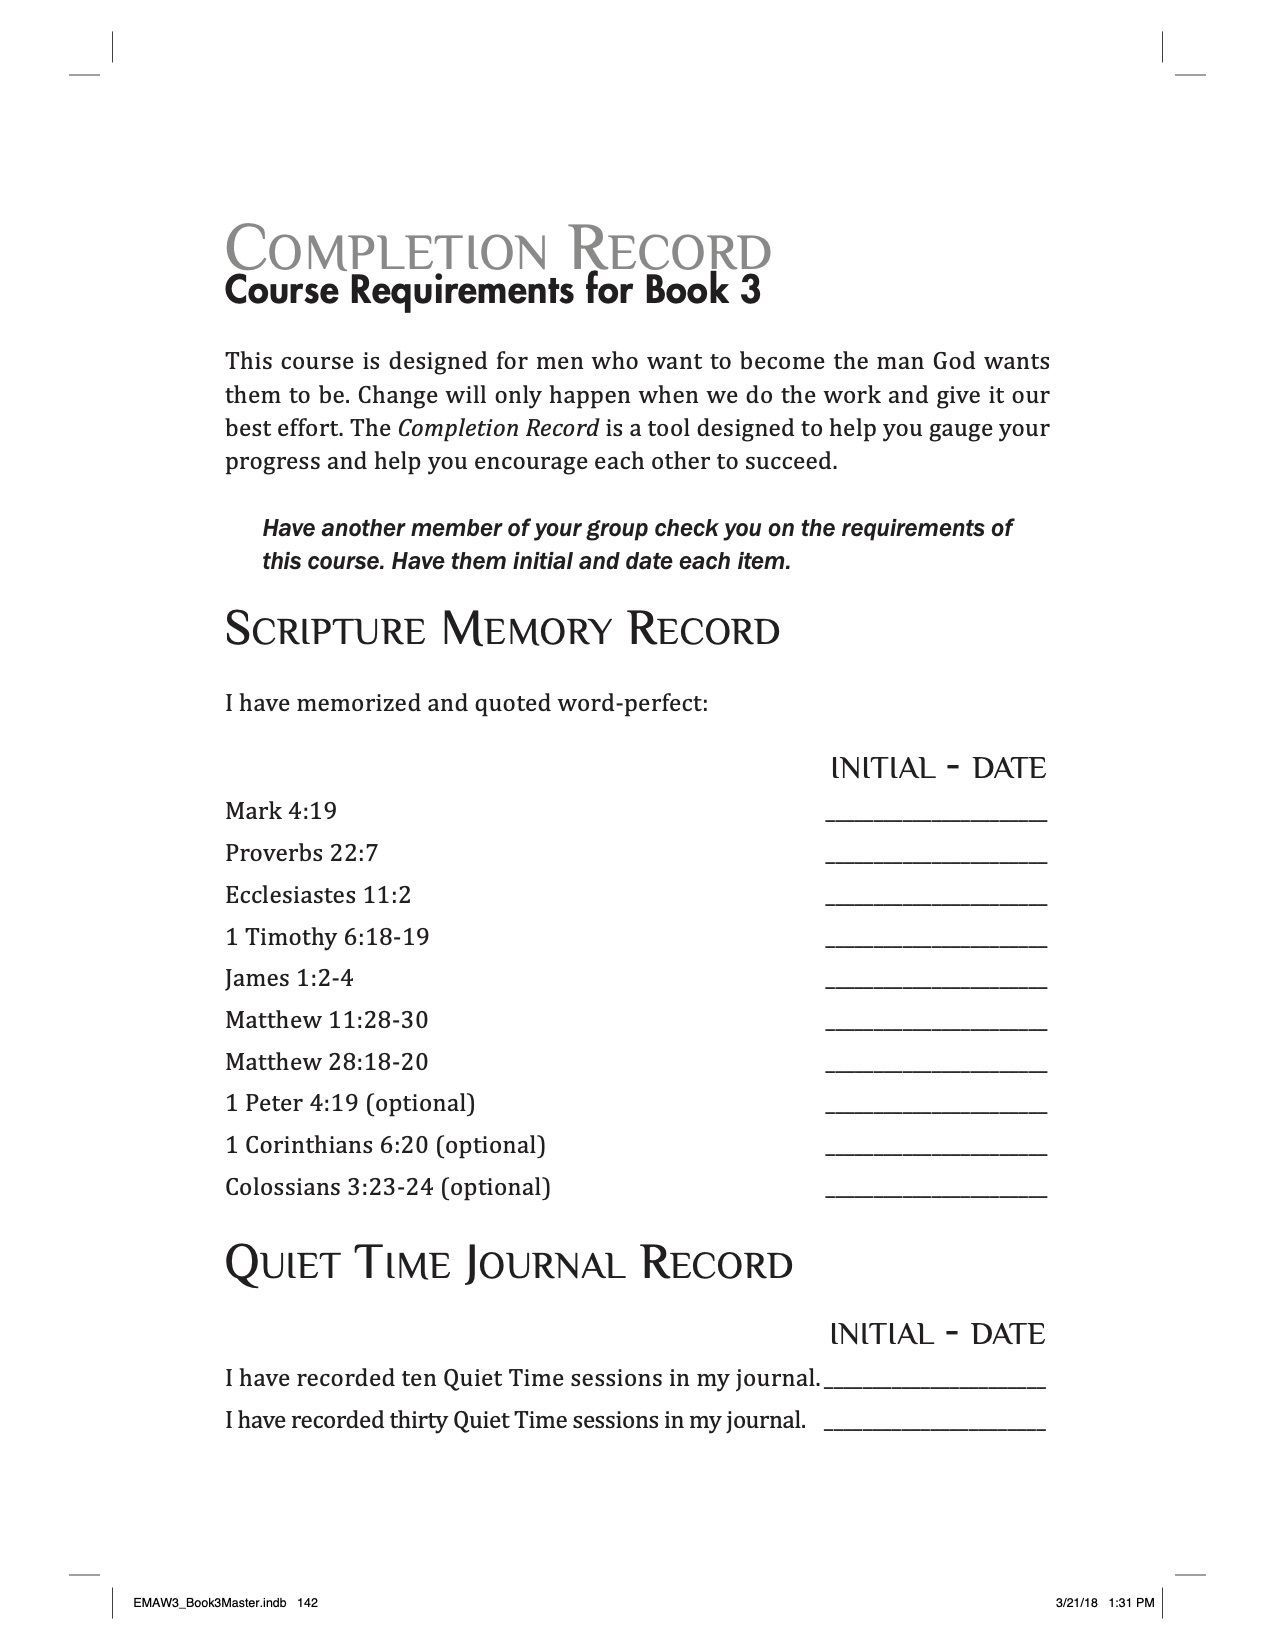 Completion Record EMAW Book 3